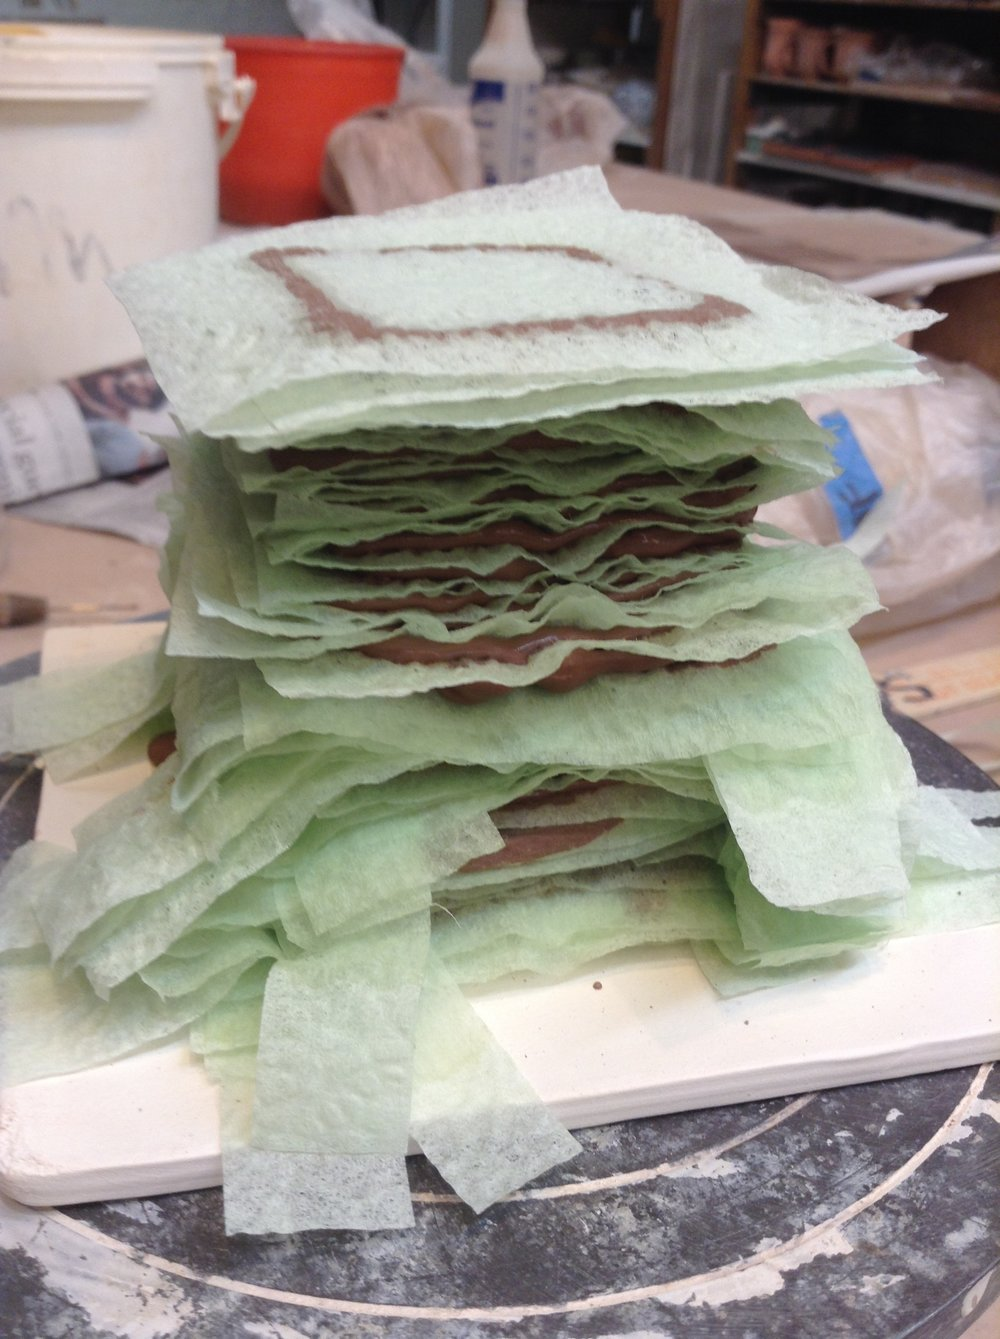 Several inches of the stacked form showing the change from napkin strips to napkin squares. The ultimate choice will be solid squares, unless there is some structure also being formed inside the form.